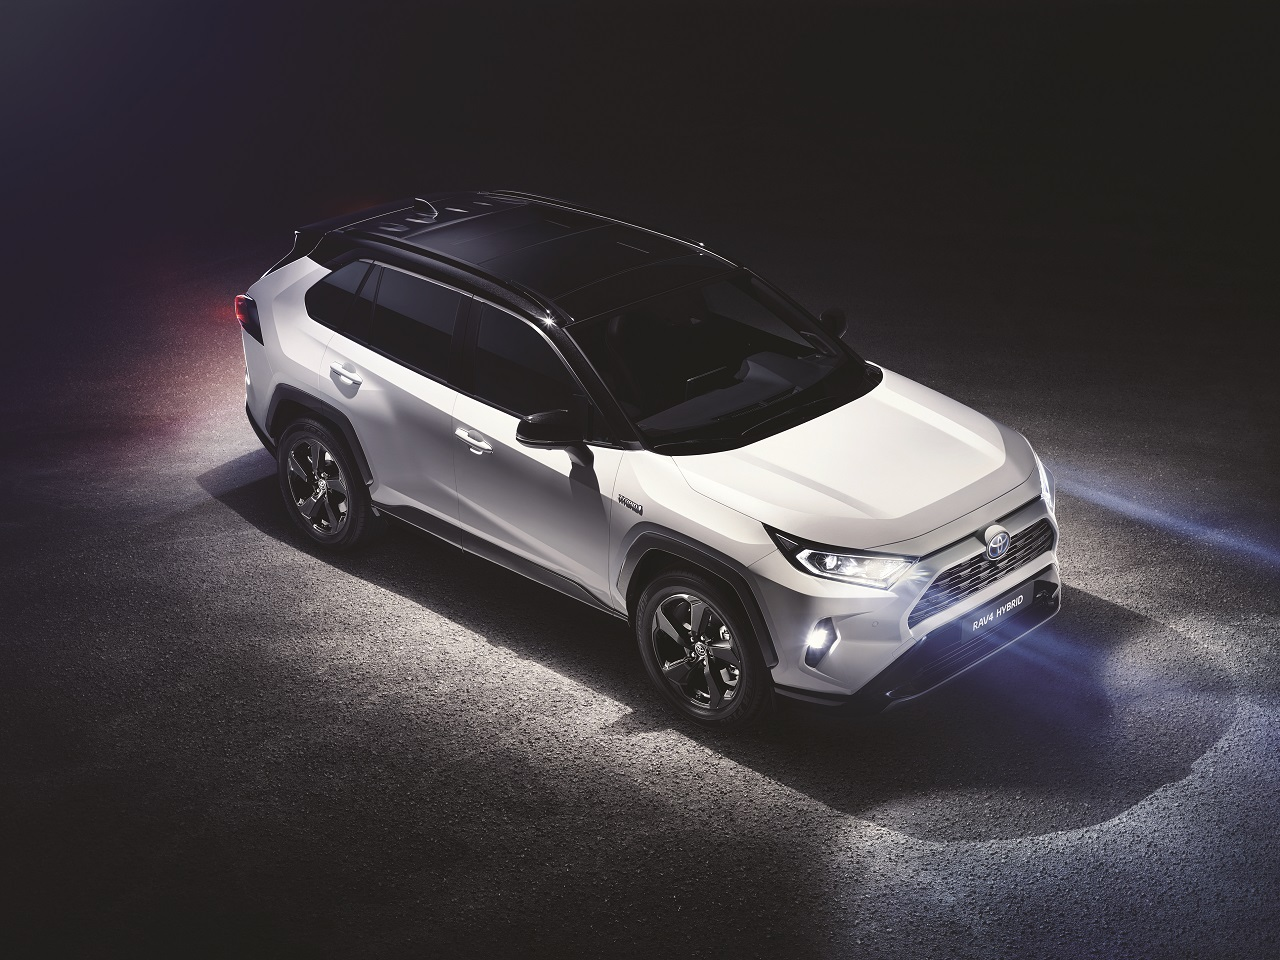 nouveau toyota rav4 hybride 2019 d voil au salon de new york. Black Bedroom Furniture Sets. Home Design Ideas